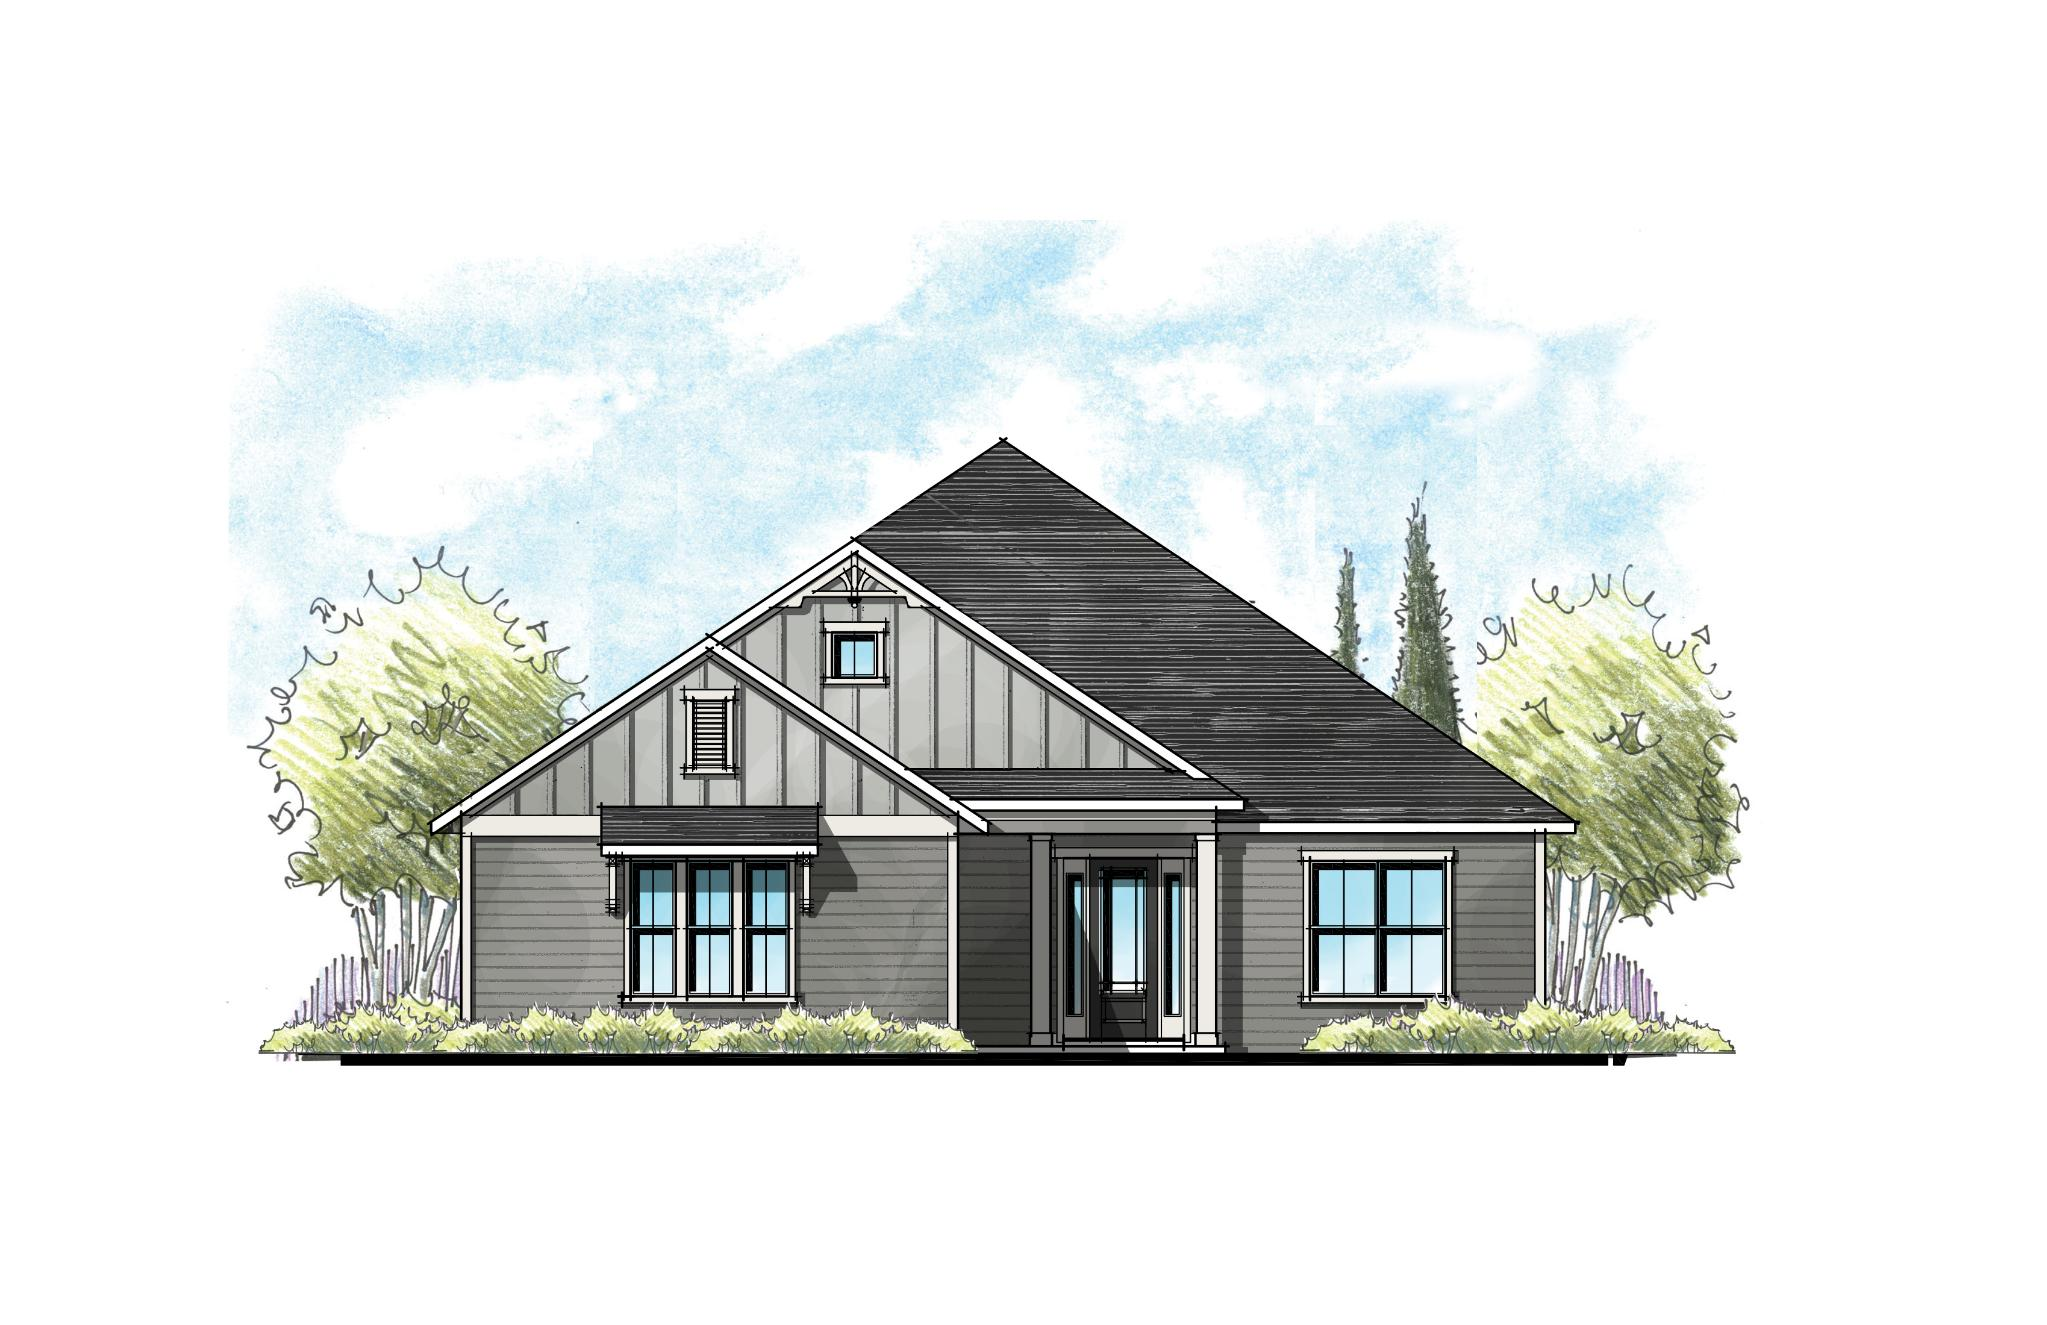 The Buckhorn Florida Farmhouse Elevation 5